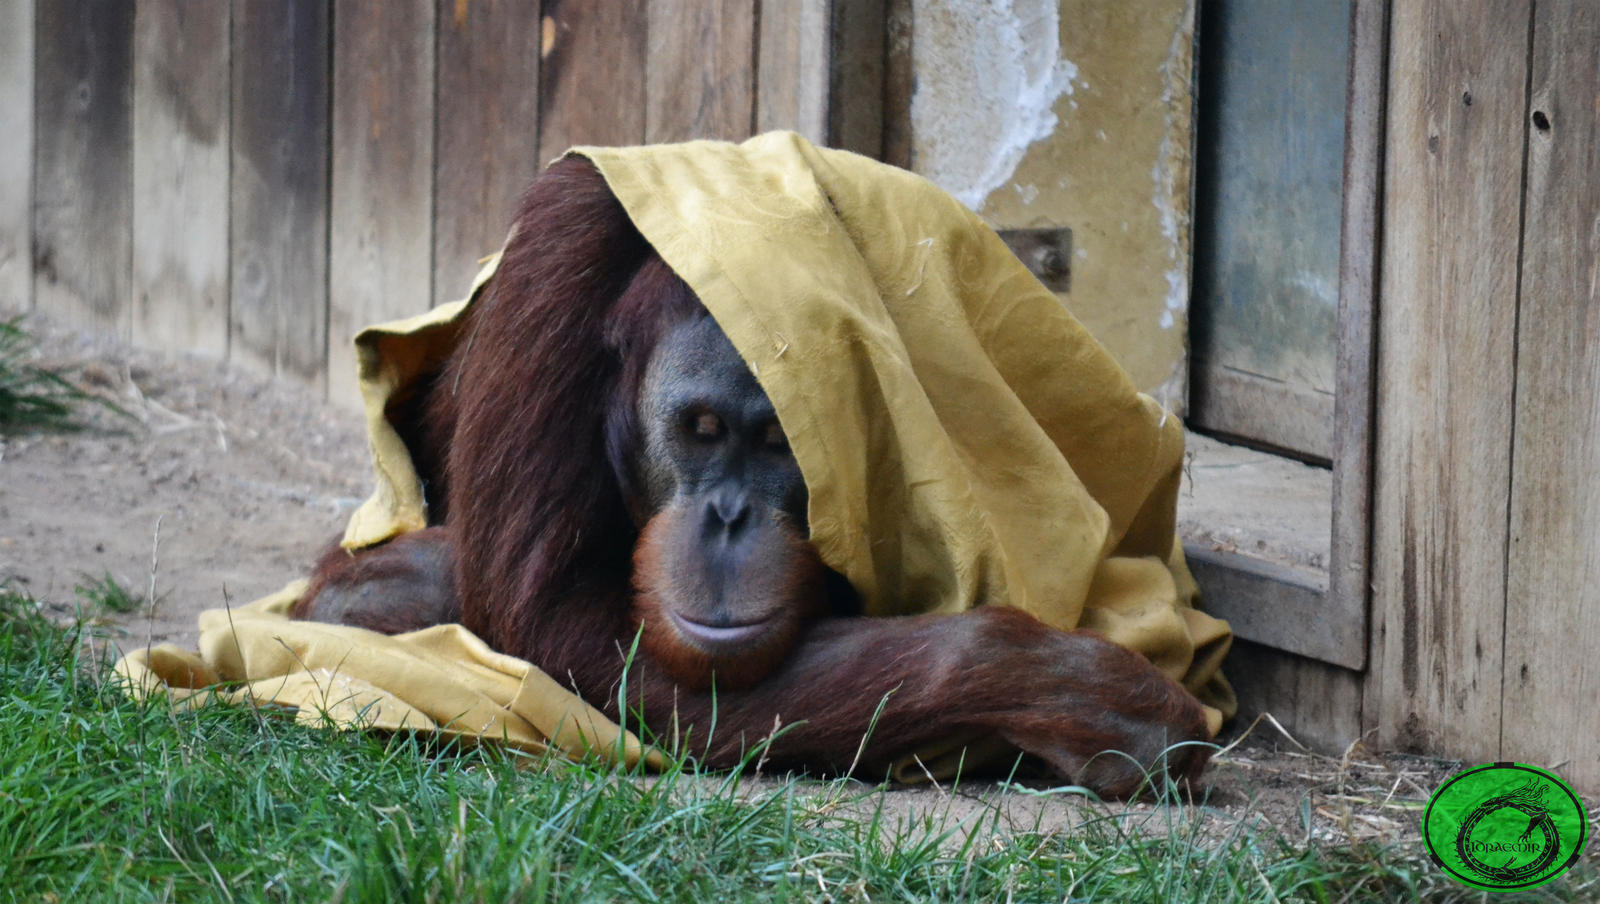 The Orangutan and the Blanket 03 by Idraemir